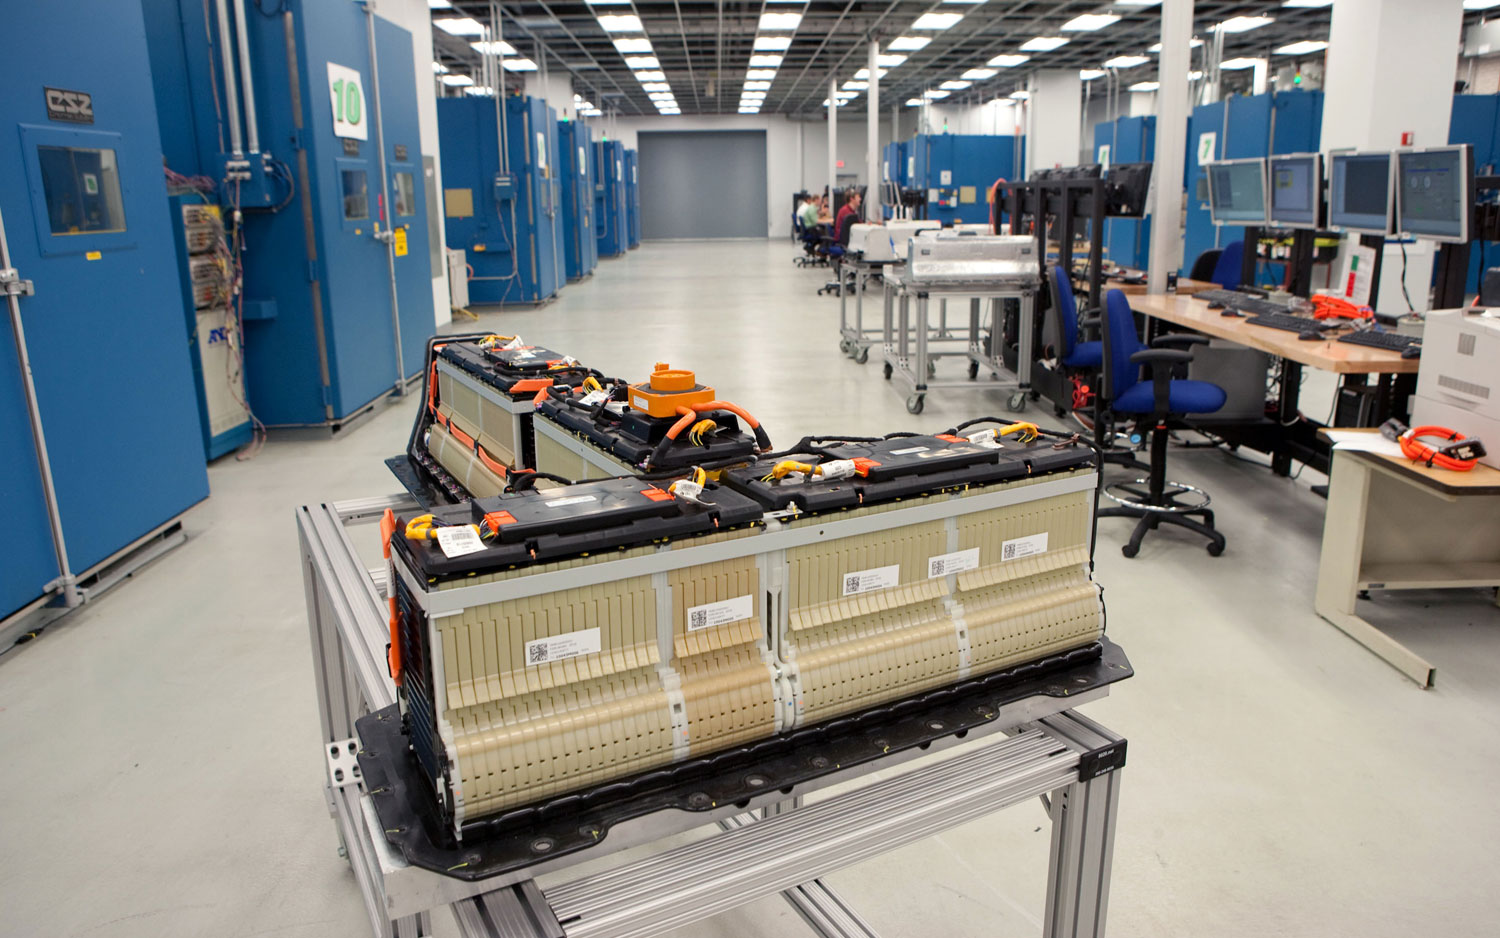 Breaking: Explosion Occurs At GM's Battery Test Lab